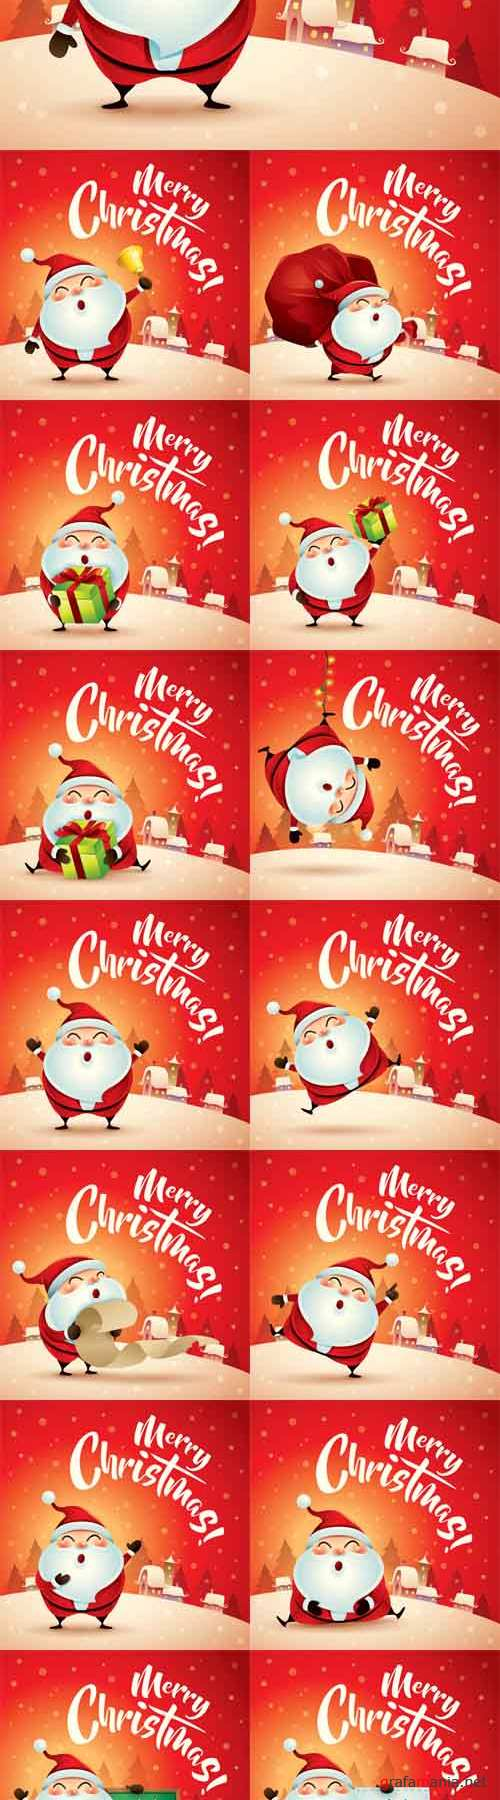 Vector Merry Christmas! Santa Claus in Christmas Snow Scenes